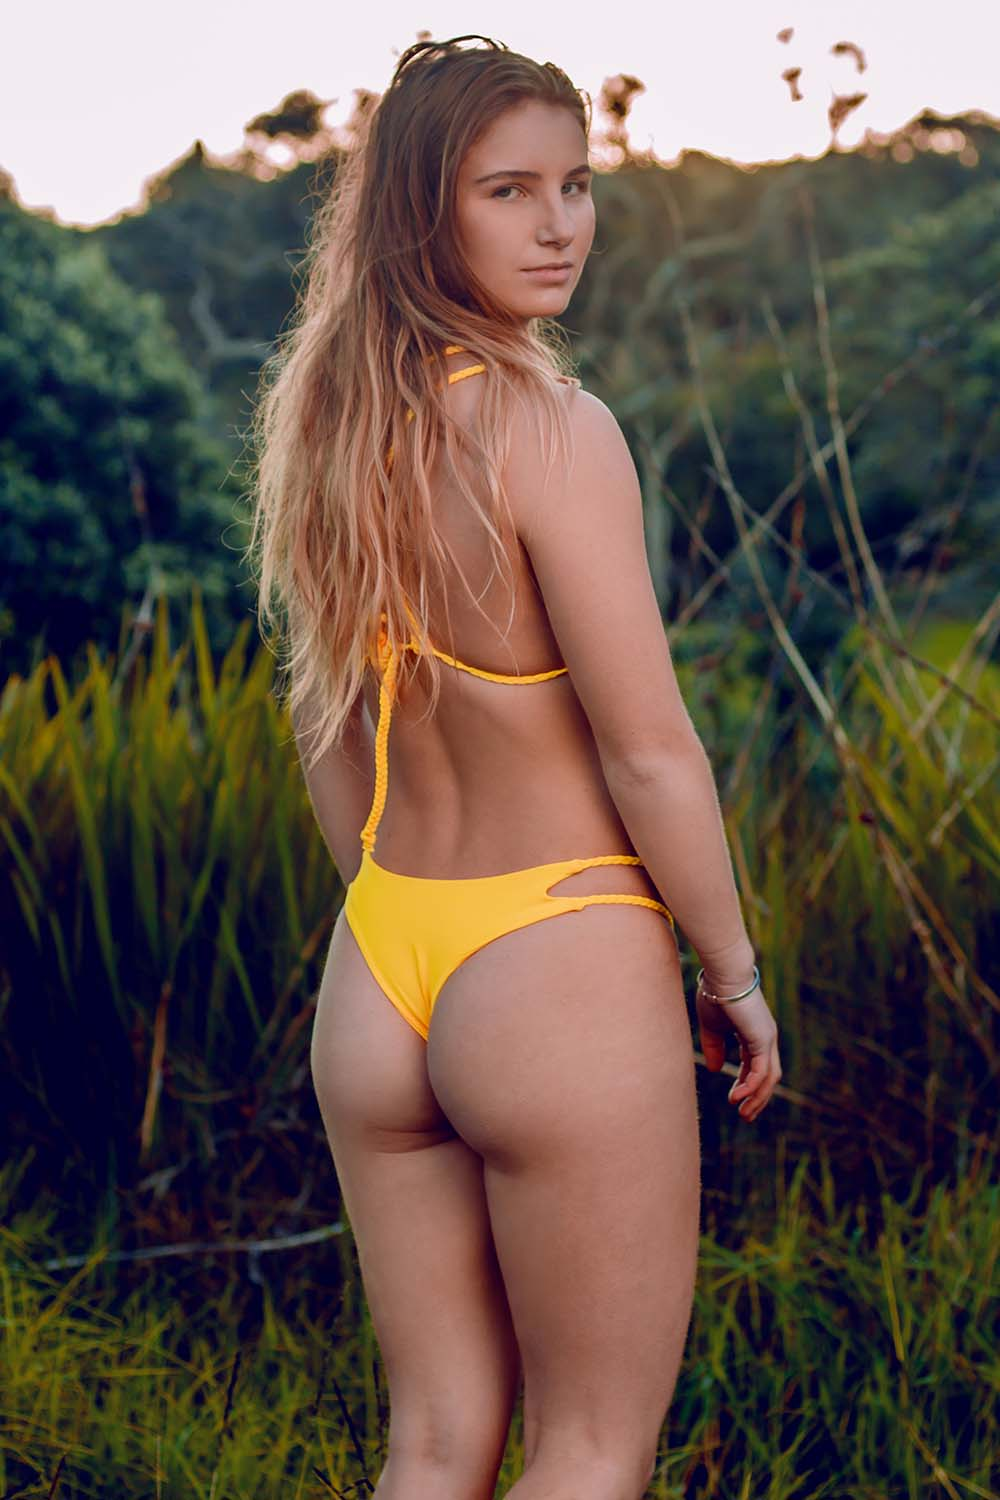 Roscoe Vision NZ online bikini store and bikini photographer based in Whangaparaoa, Auckland, New Zealand.